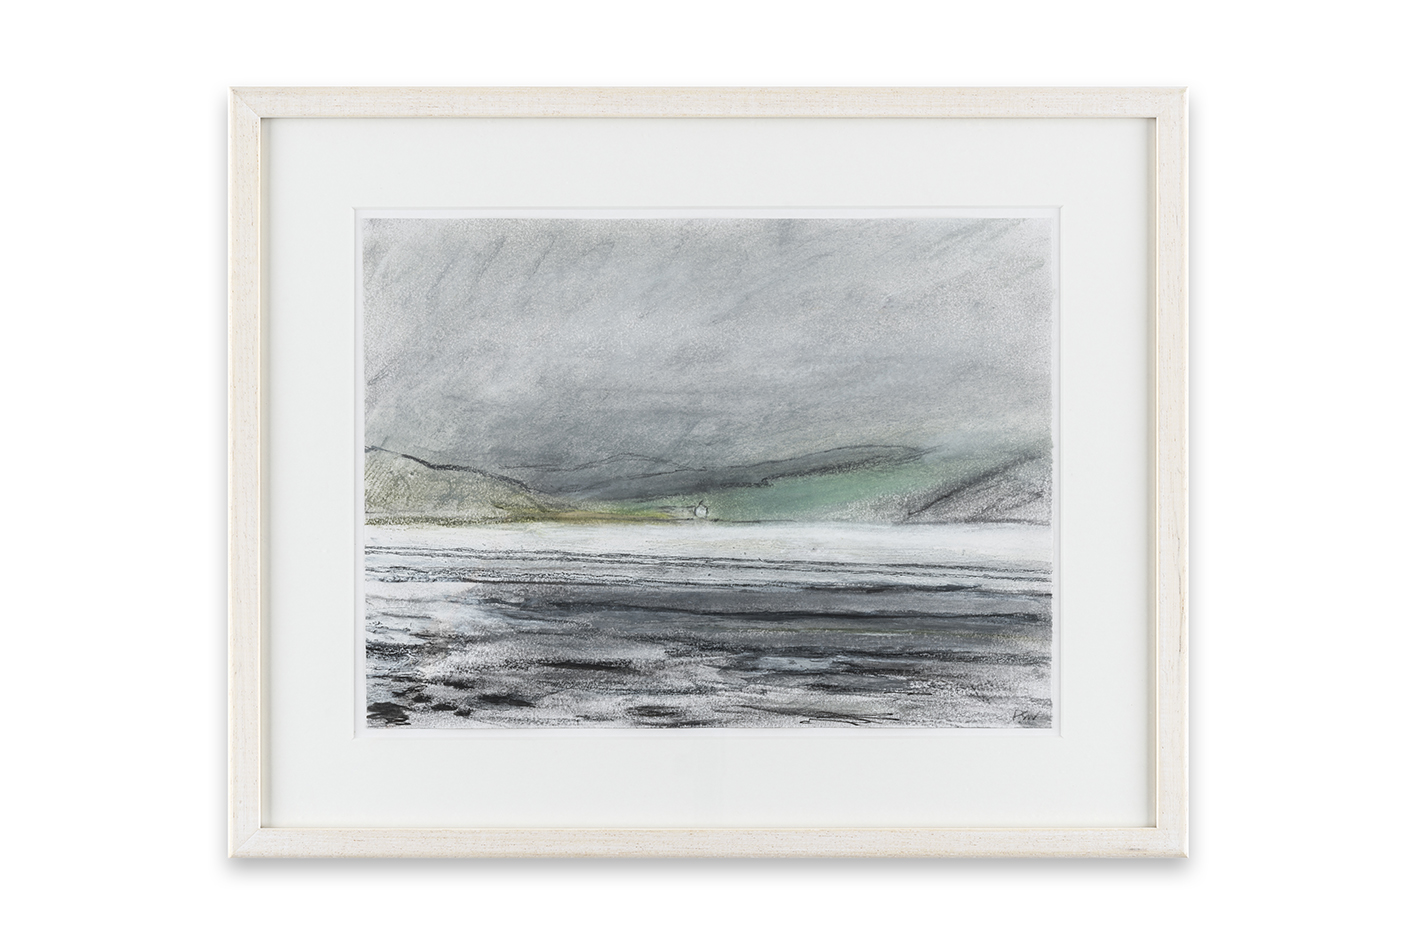 Across the Bay, 21 x 30 cm, pastel and mixed media on paper